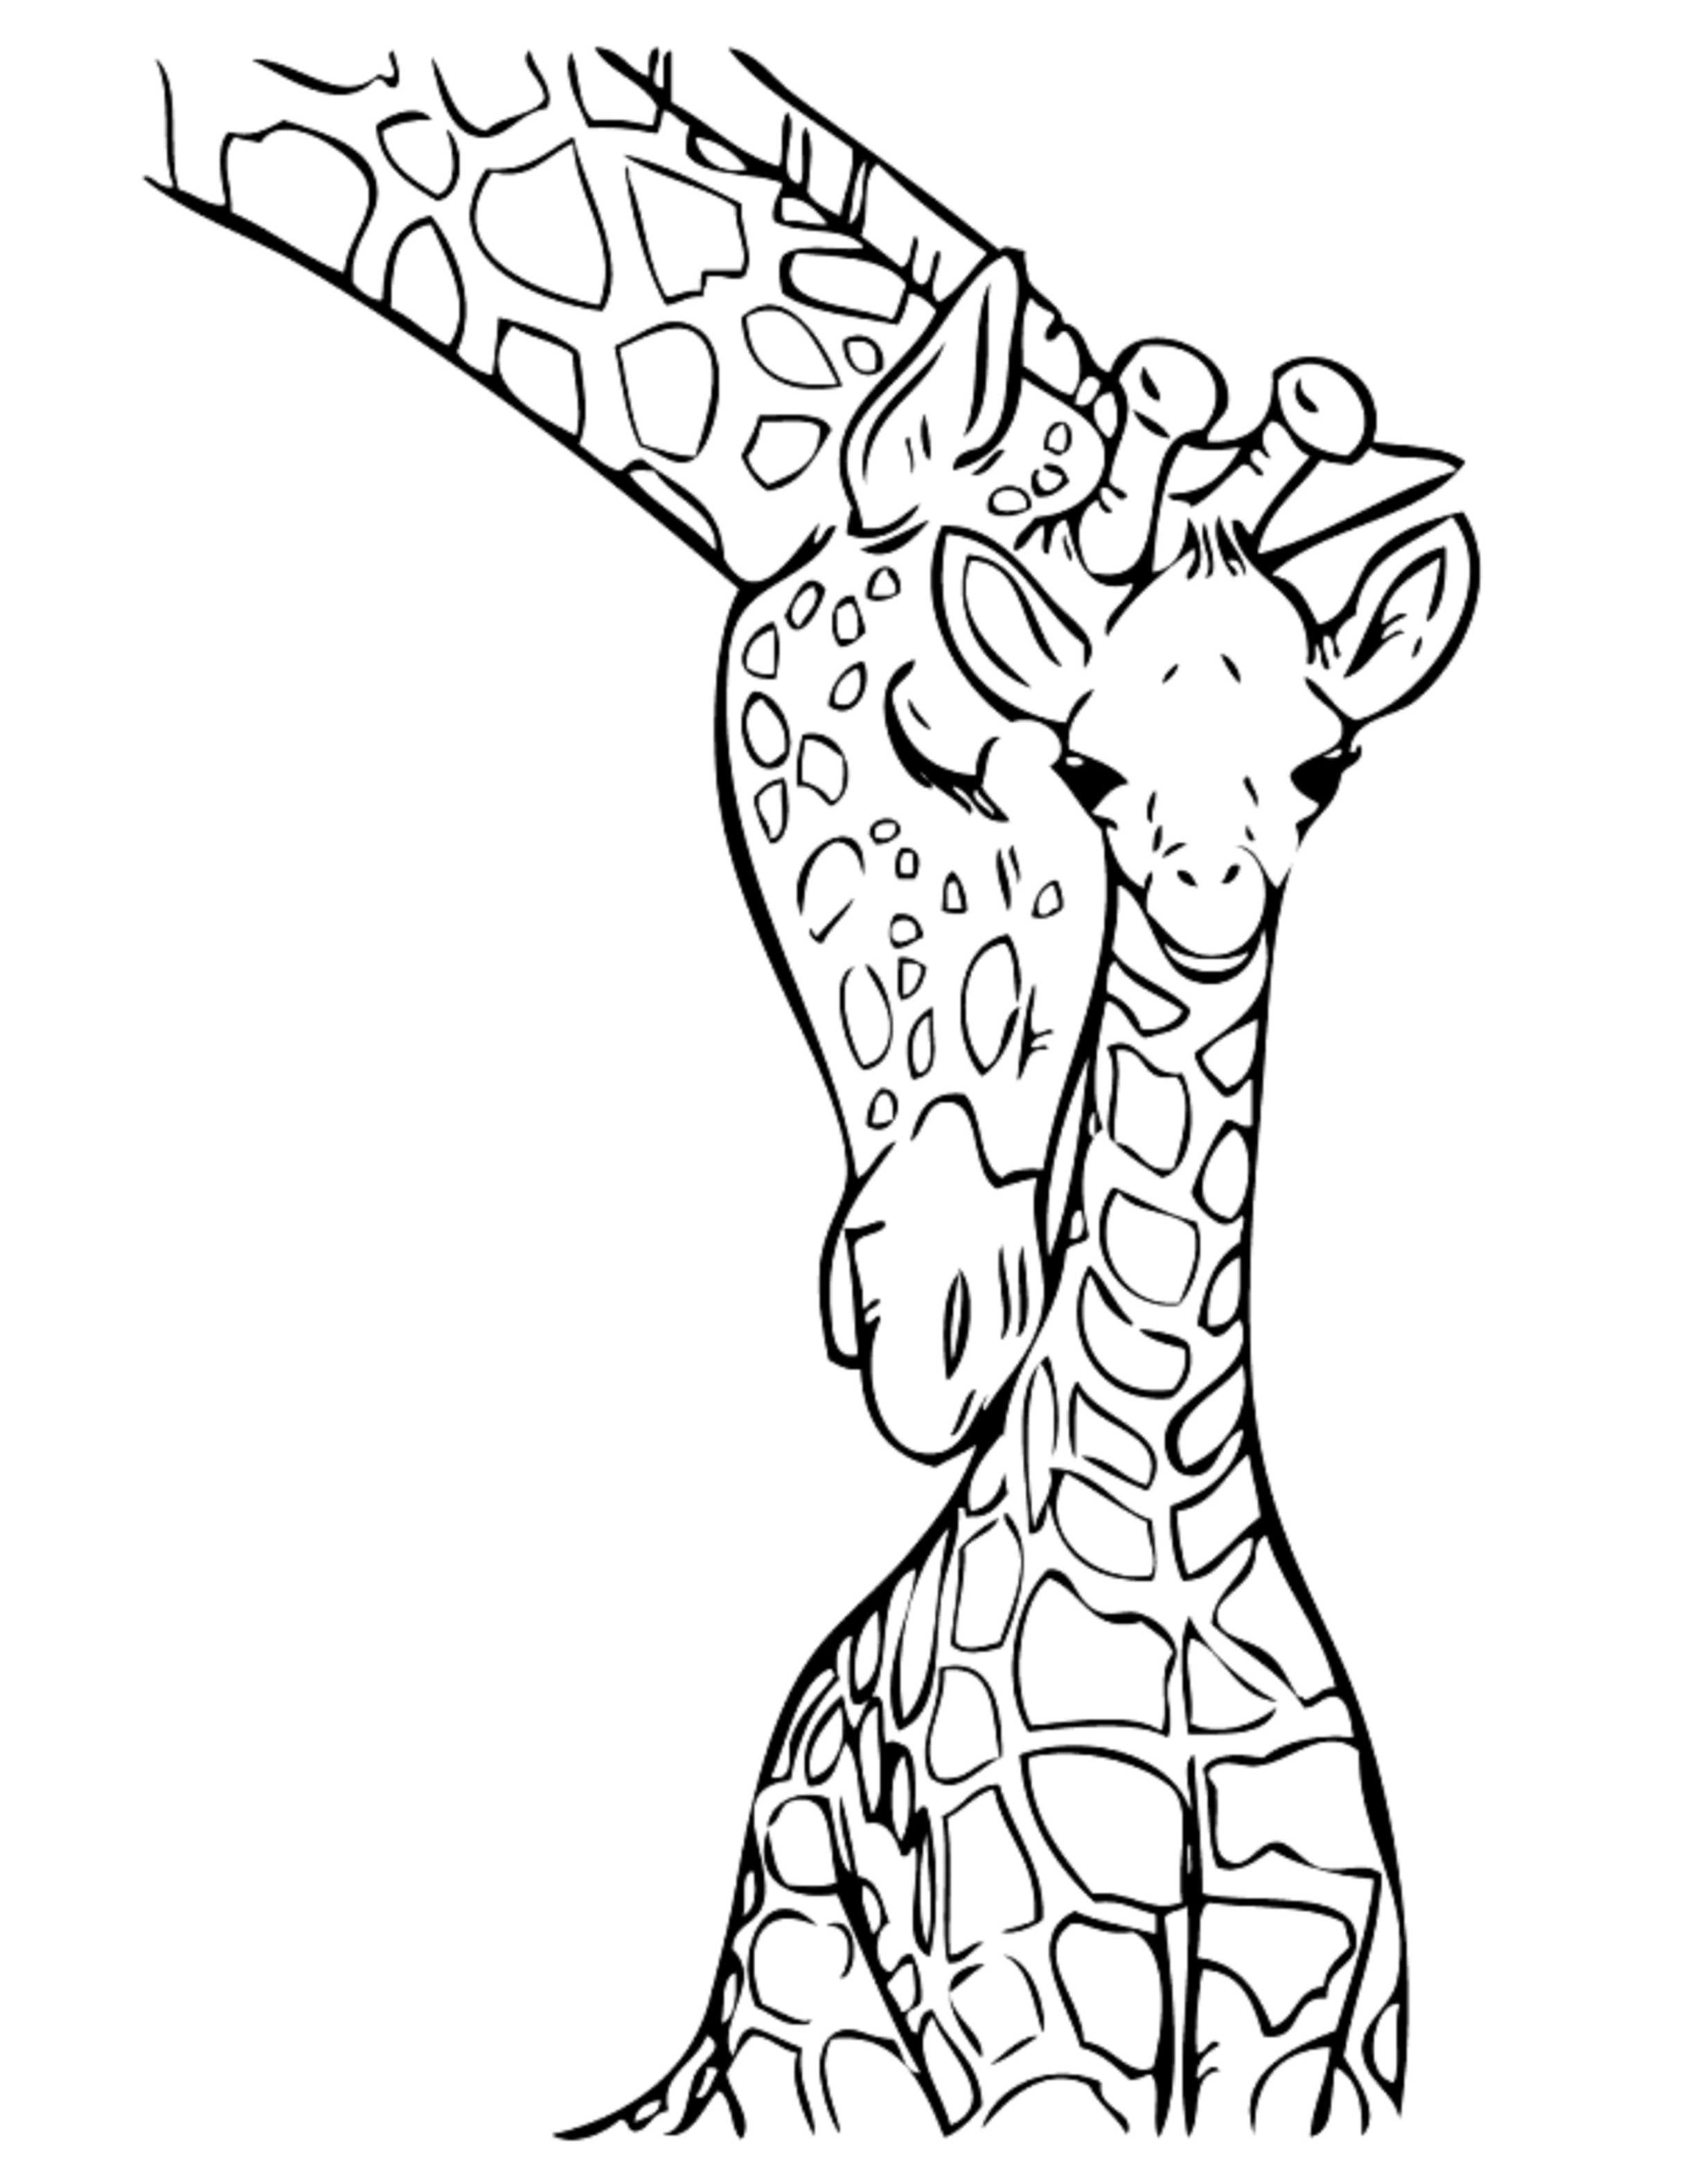 giraffe coloring pages giraffes coloring pages to download and print for free giraffe coloring pages